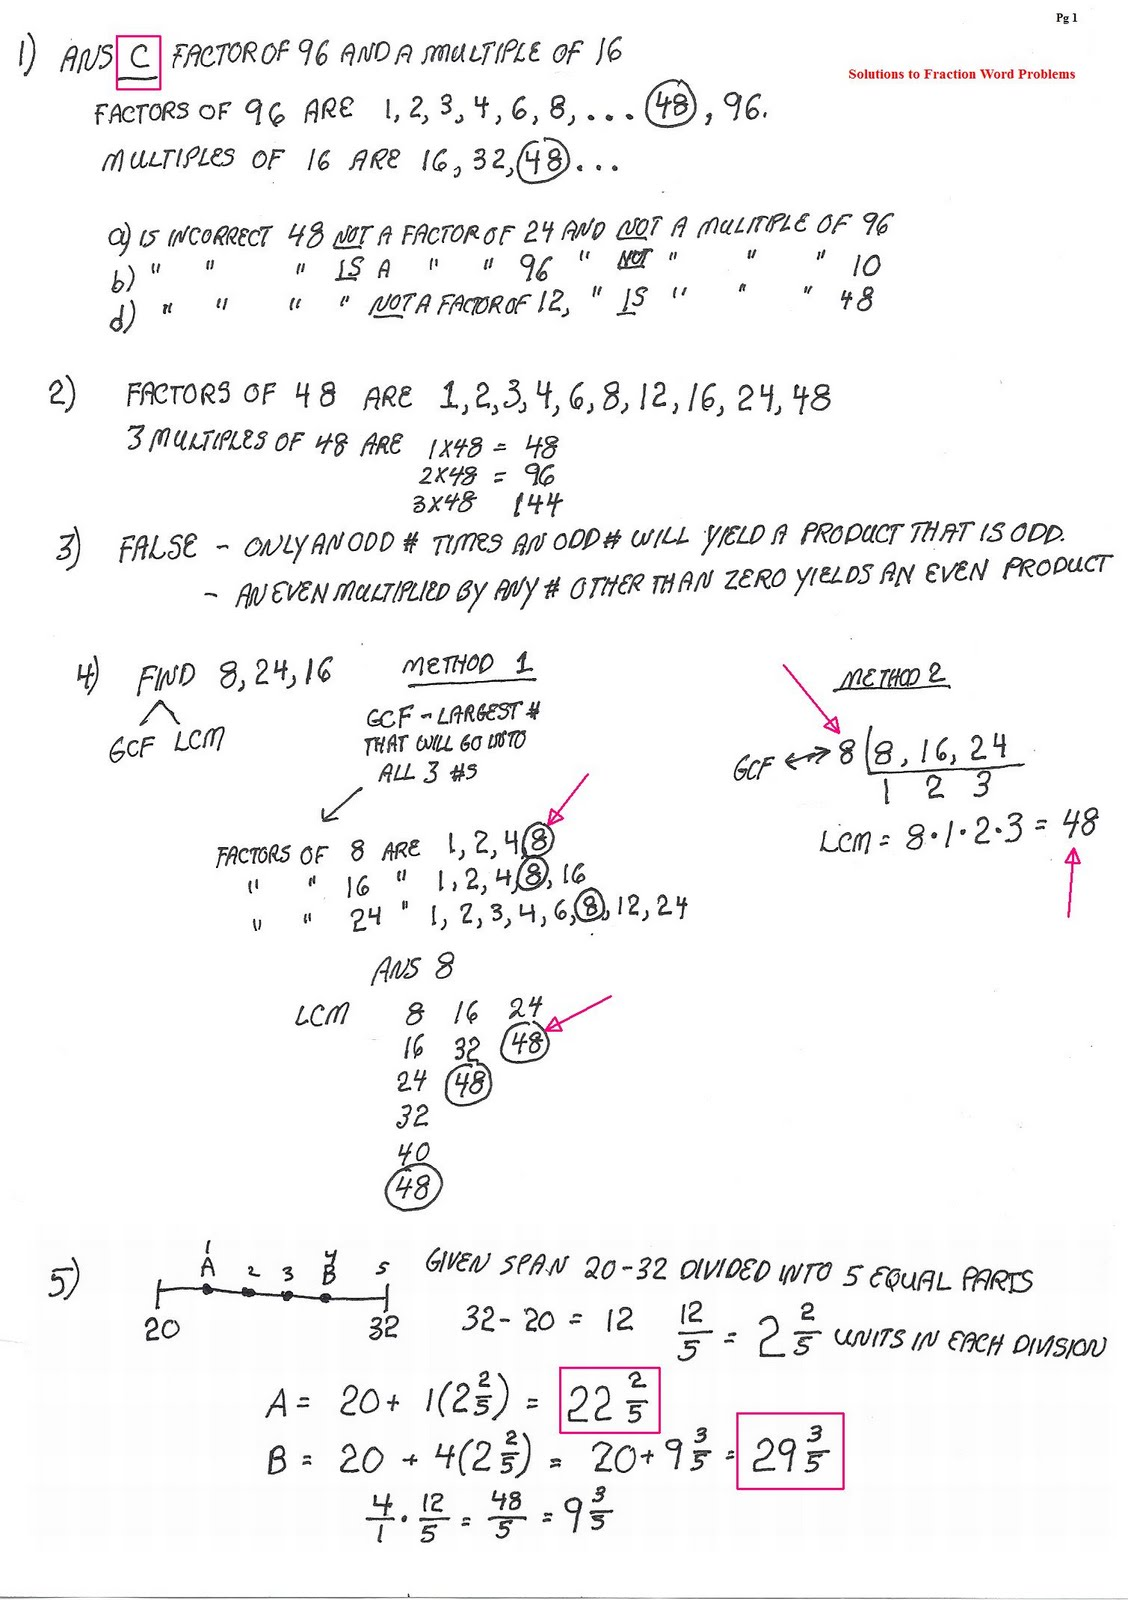 math worksheet : cobb adult ed math answers to original fraction word problems : Ged Math Word Problems Worksheets